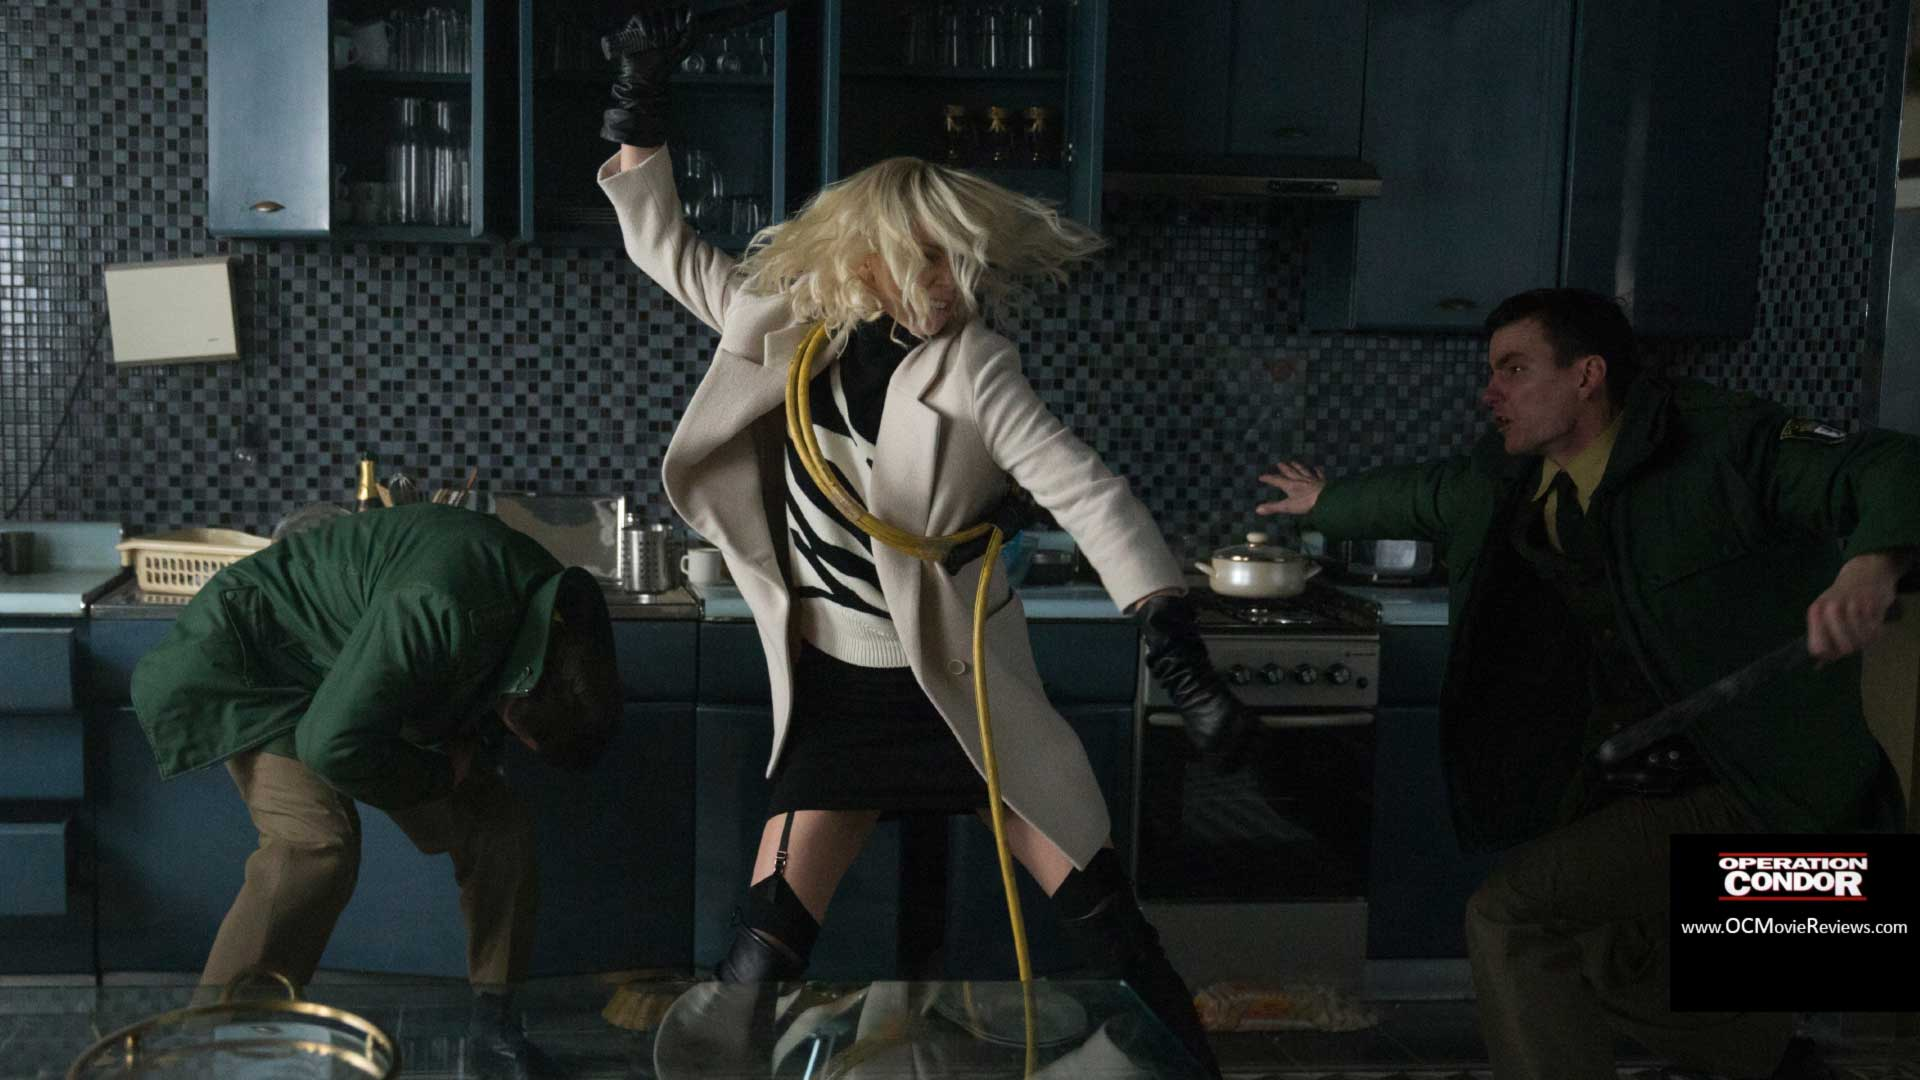 Atomic Blonde Review - OC Movie Reviews - Movie Reviews, Movie News, Documentary Reviews, Short Films, Short Film Reviews, Trailers, Movie Trailers, Interviews, film reviews, film news, hollywood, indie films, documentaries